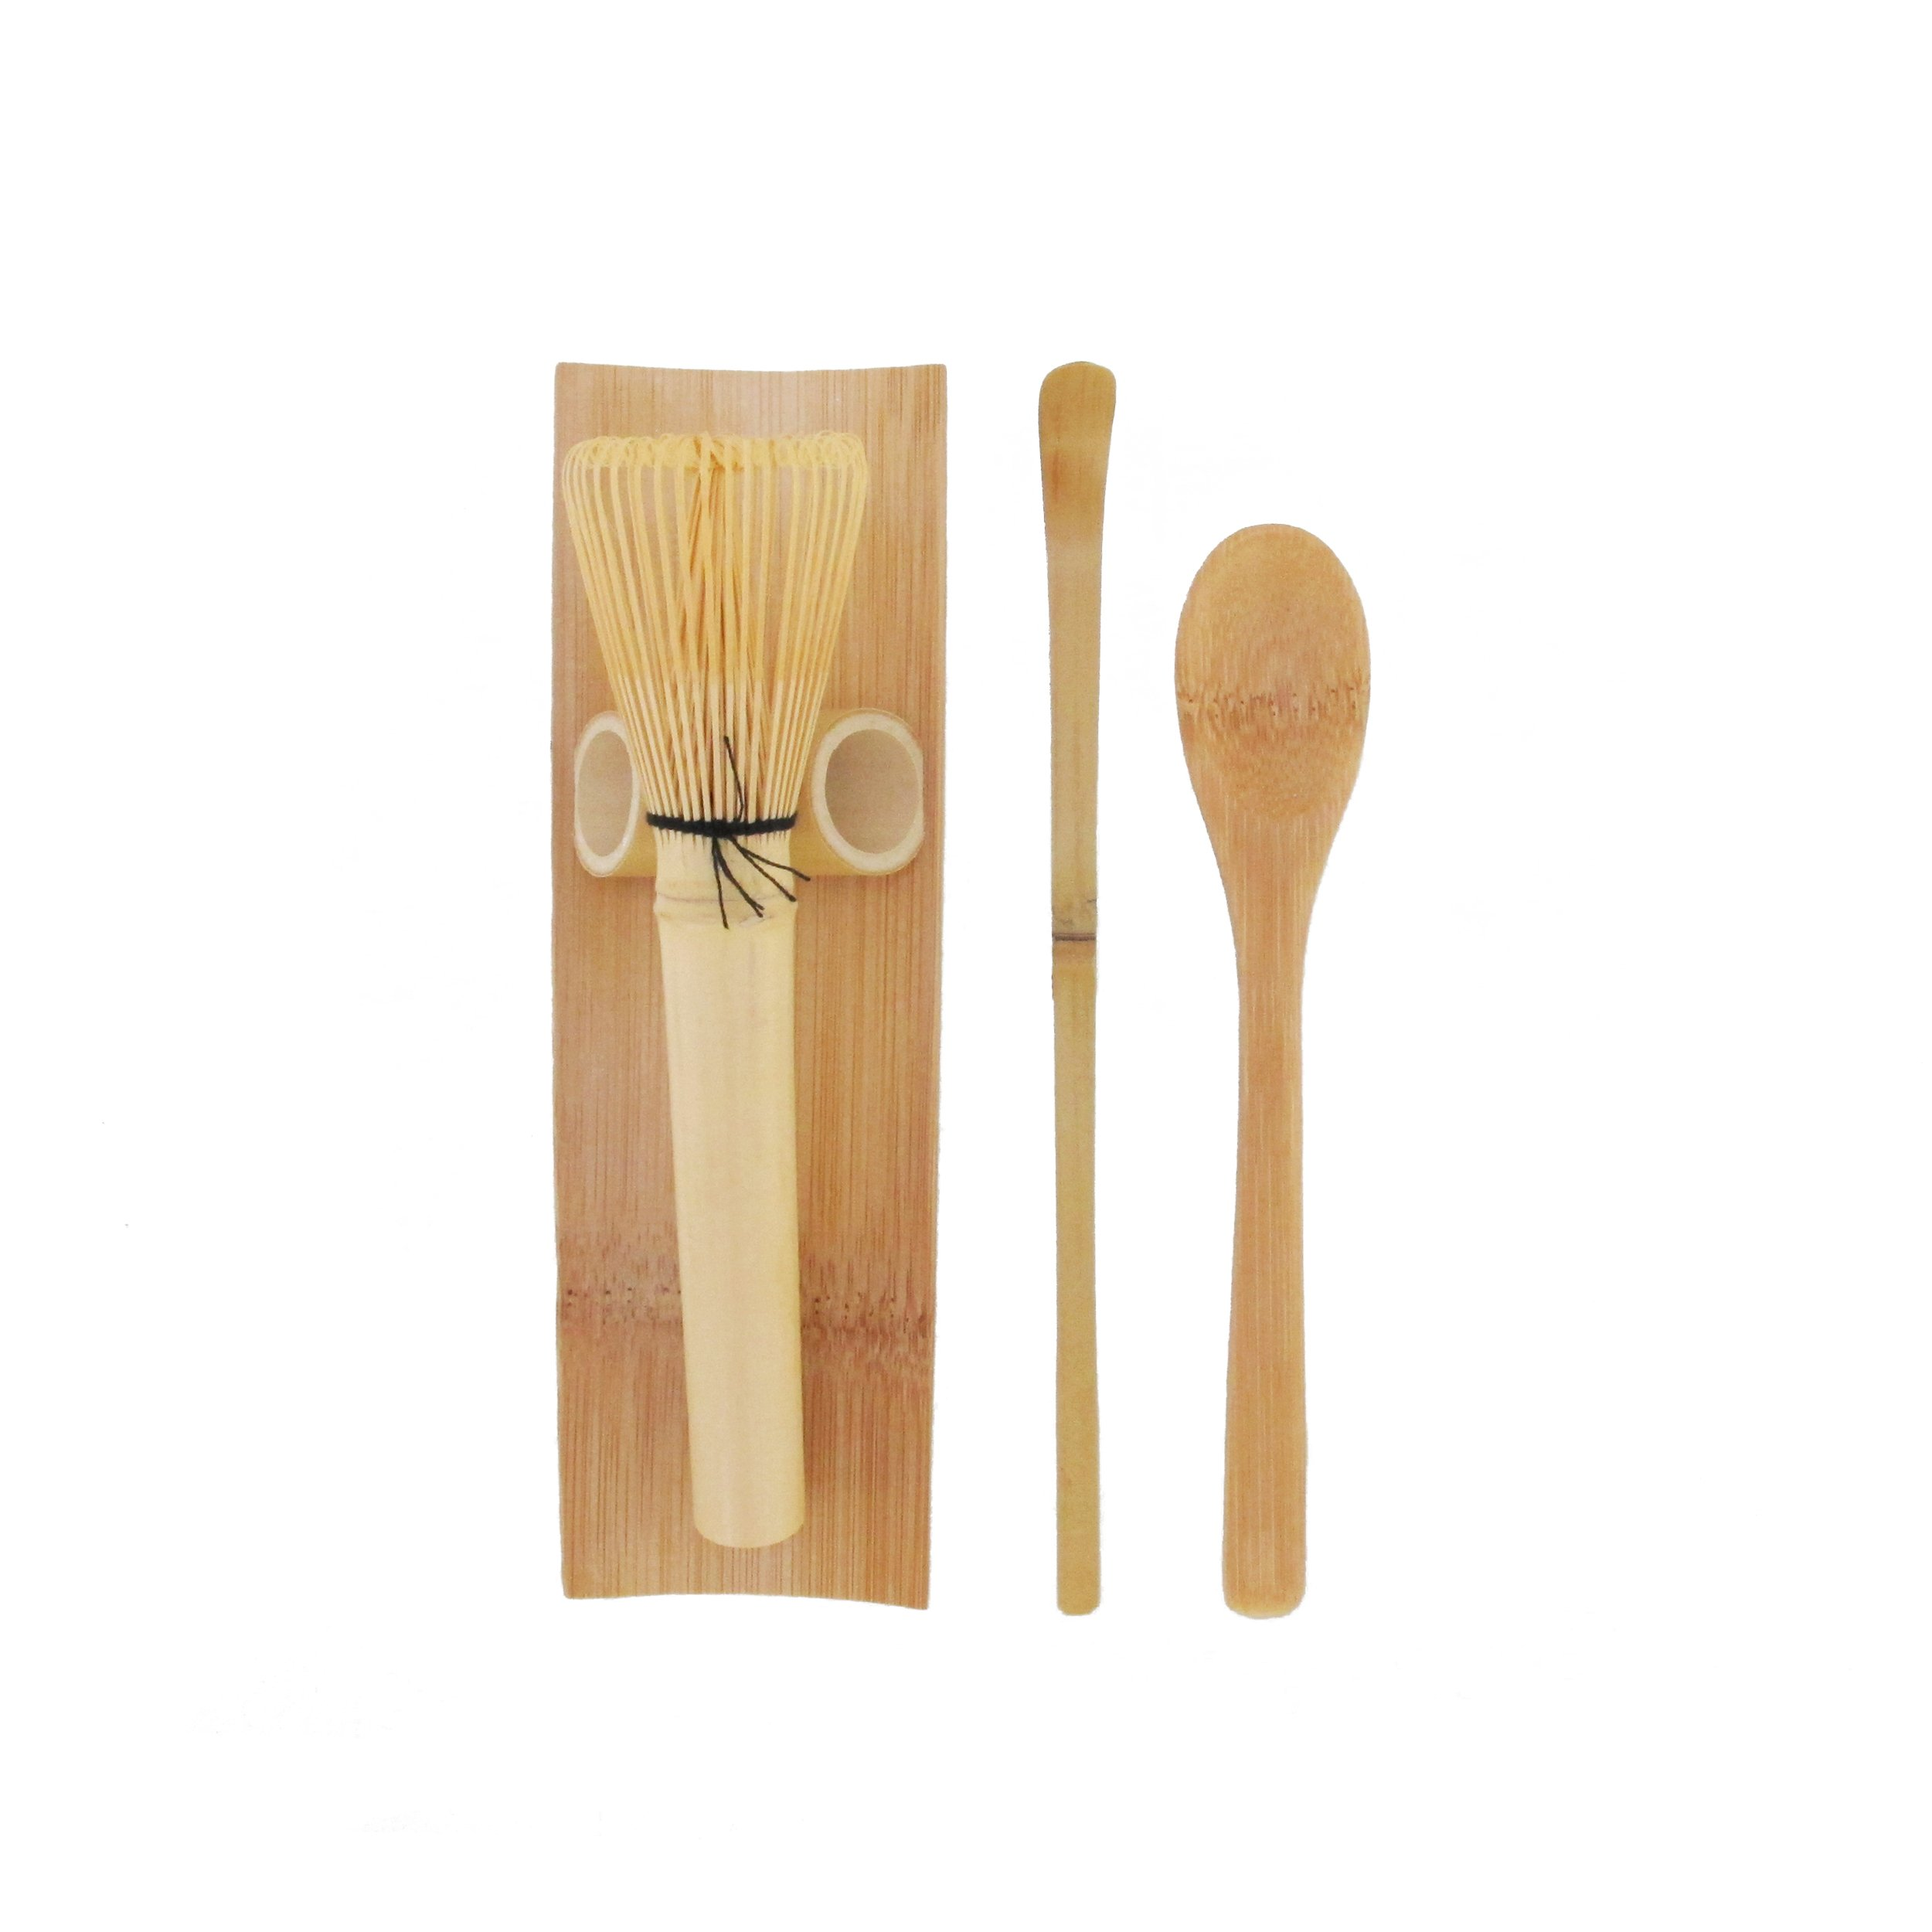 BambooMN Matcha Whisk Set - Skinny Golden Chasen (Tea Whisk), Tray, Chashaku (Hooked Bamboo Scoop), Tea Spoon - 1 Set by BambooMN